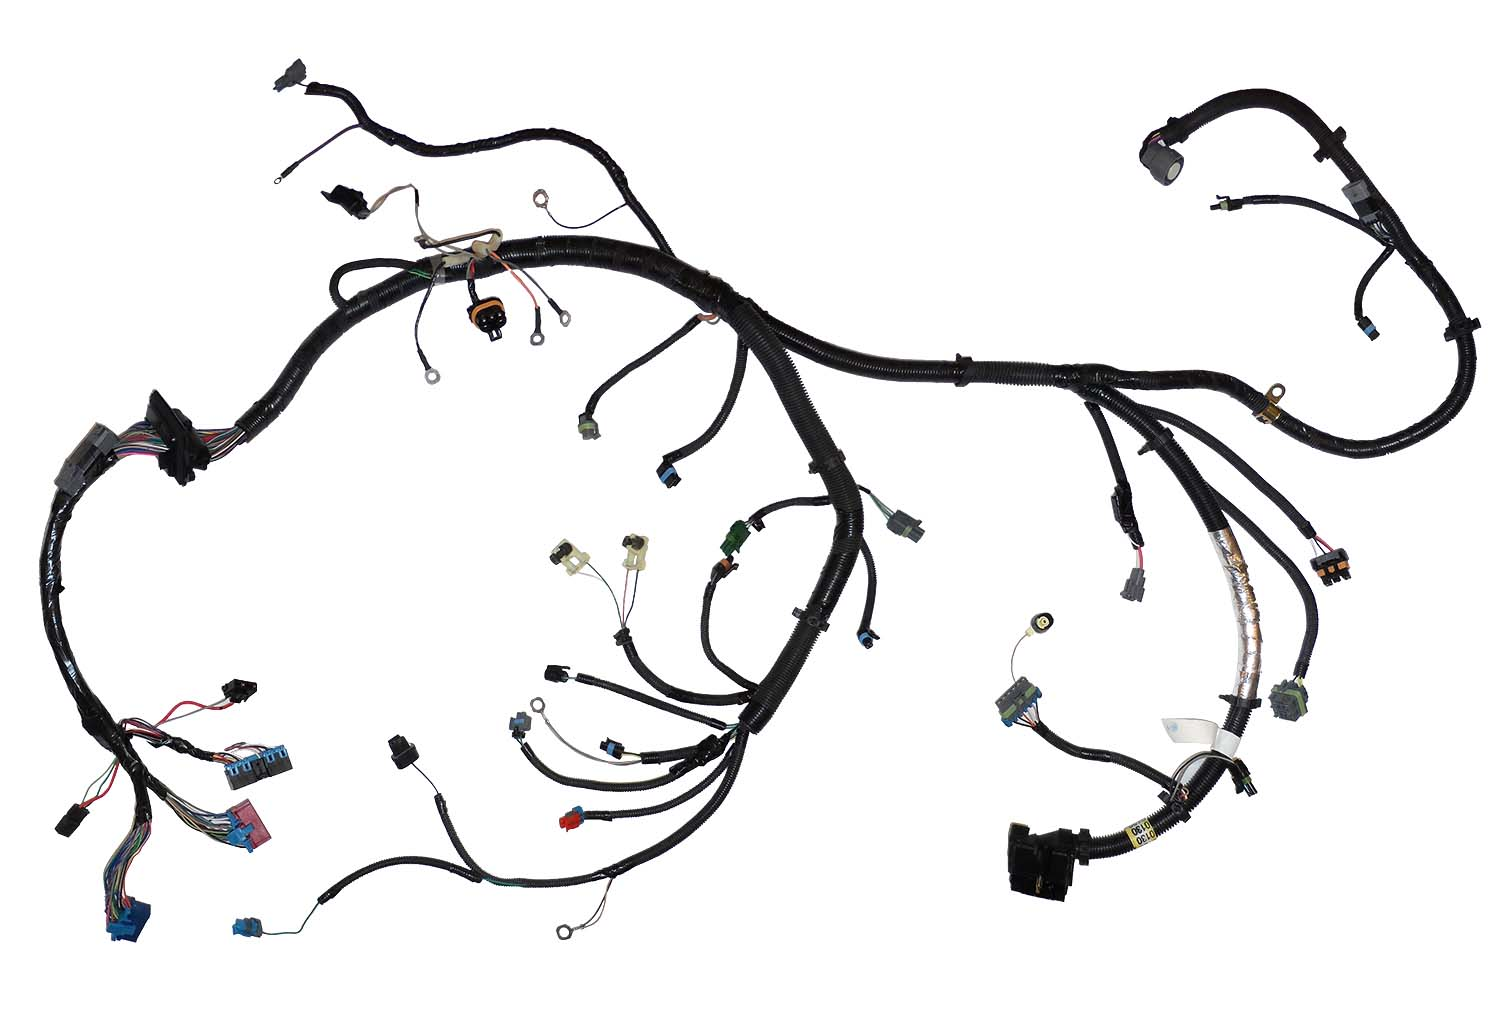 Tbi Wiring Harness Diagrams Schema 350 Engine 12150130 Oem 92 96 5 0l 7l 305 Gm 4l80e